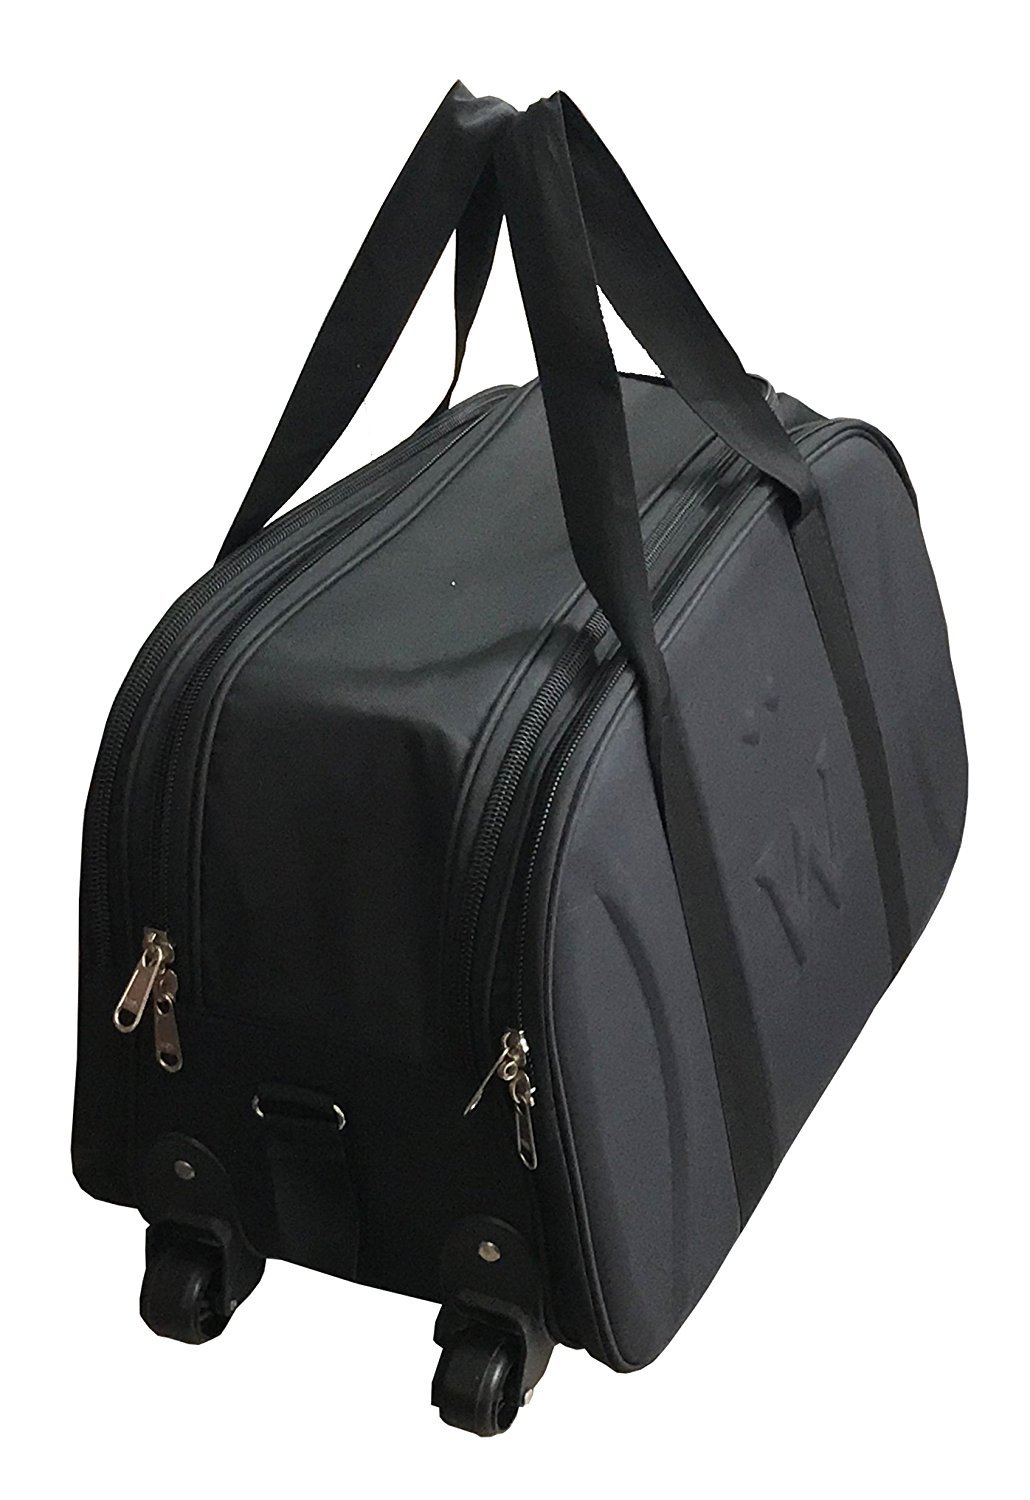 Shuban Canvas Black Travel Duffle Bag with Wheels